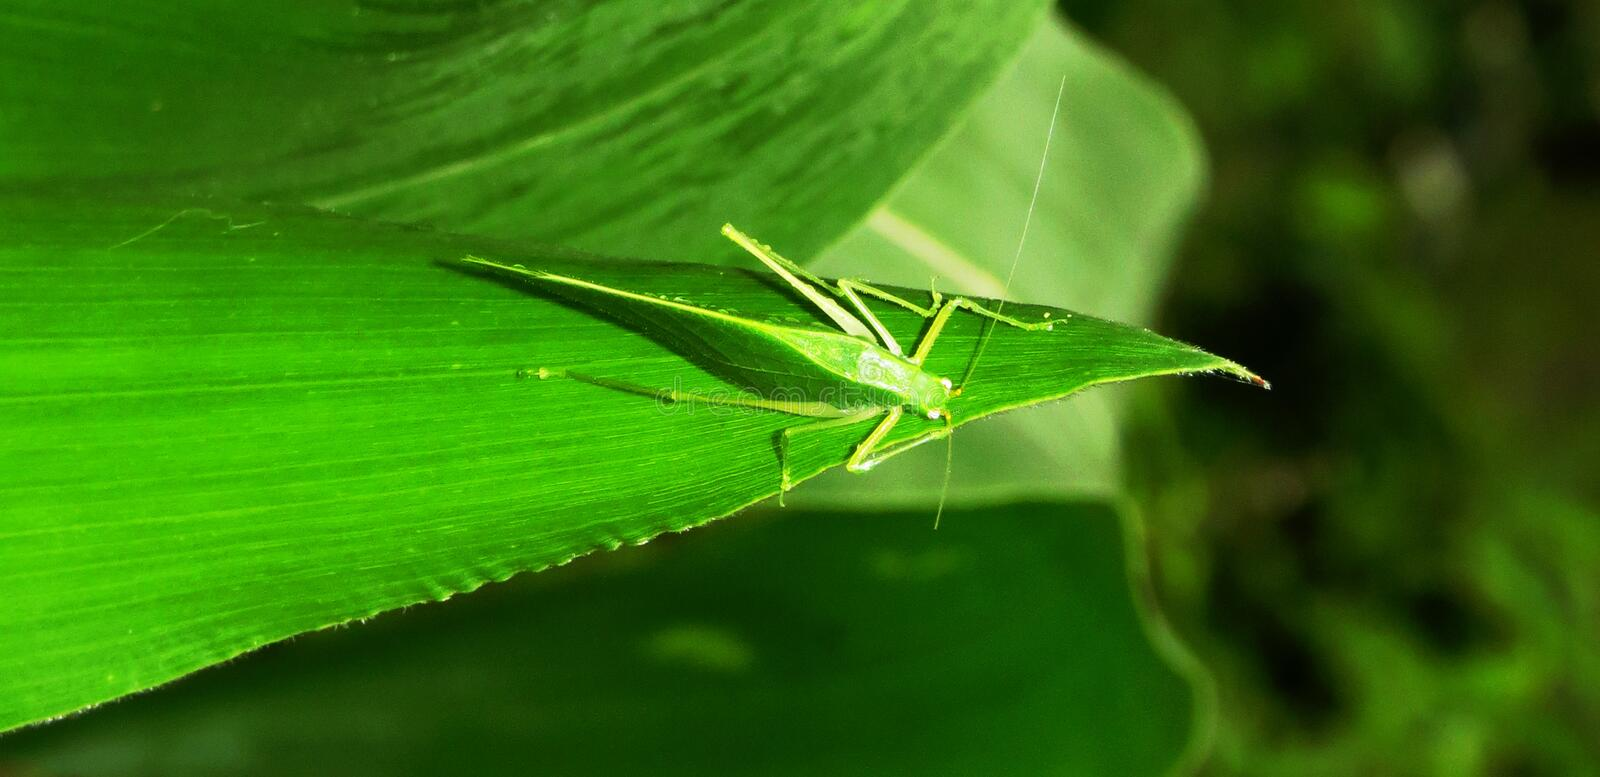 Leaf, Green, Grasshopper, Insect royalty free stock image